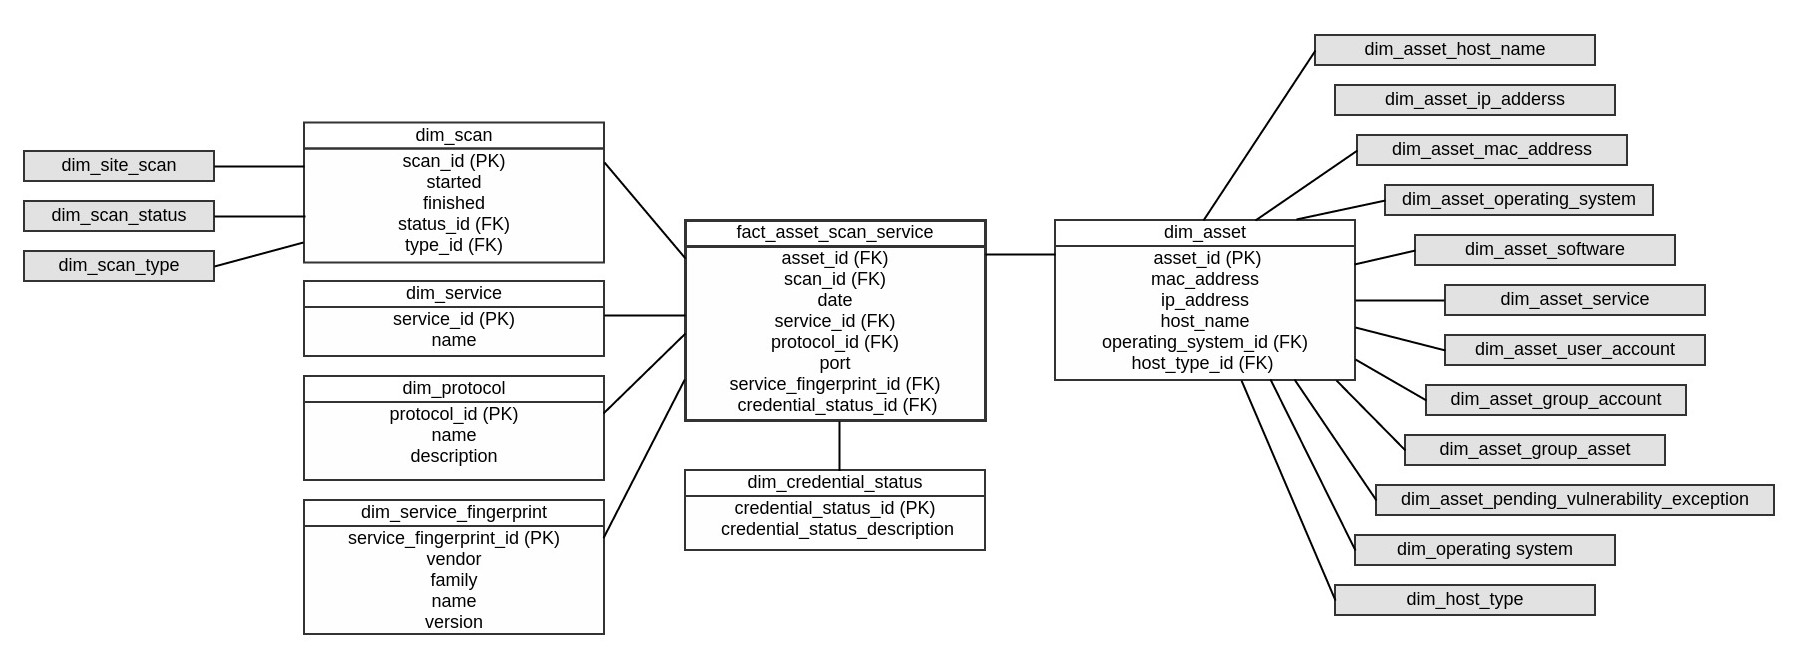 Dimensional model for fact_asset_scan_service